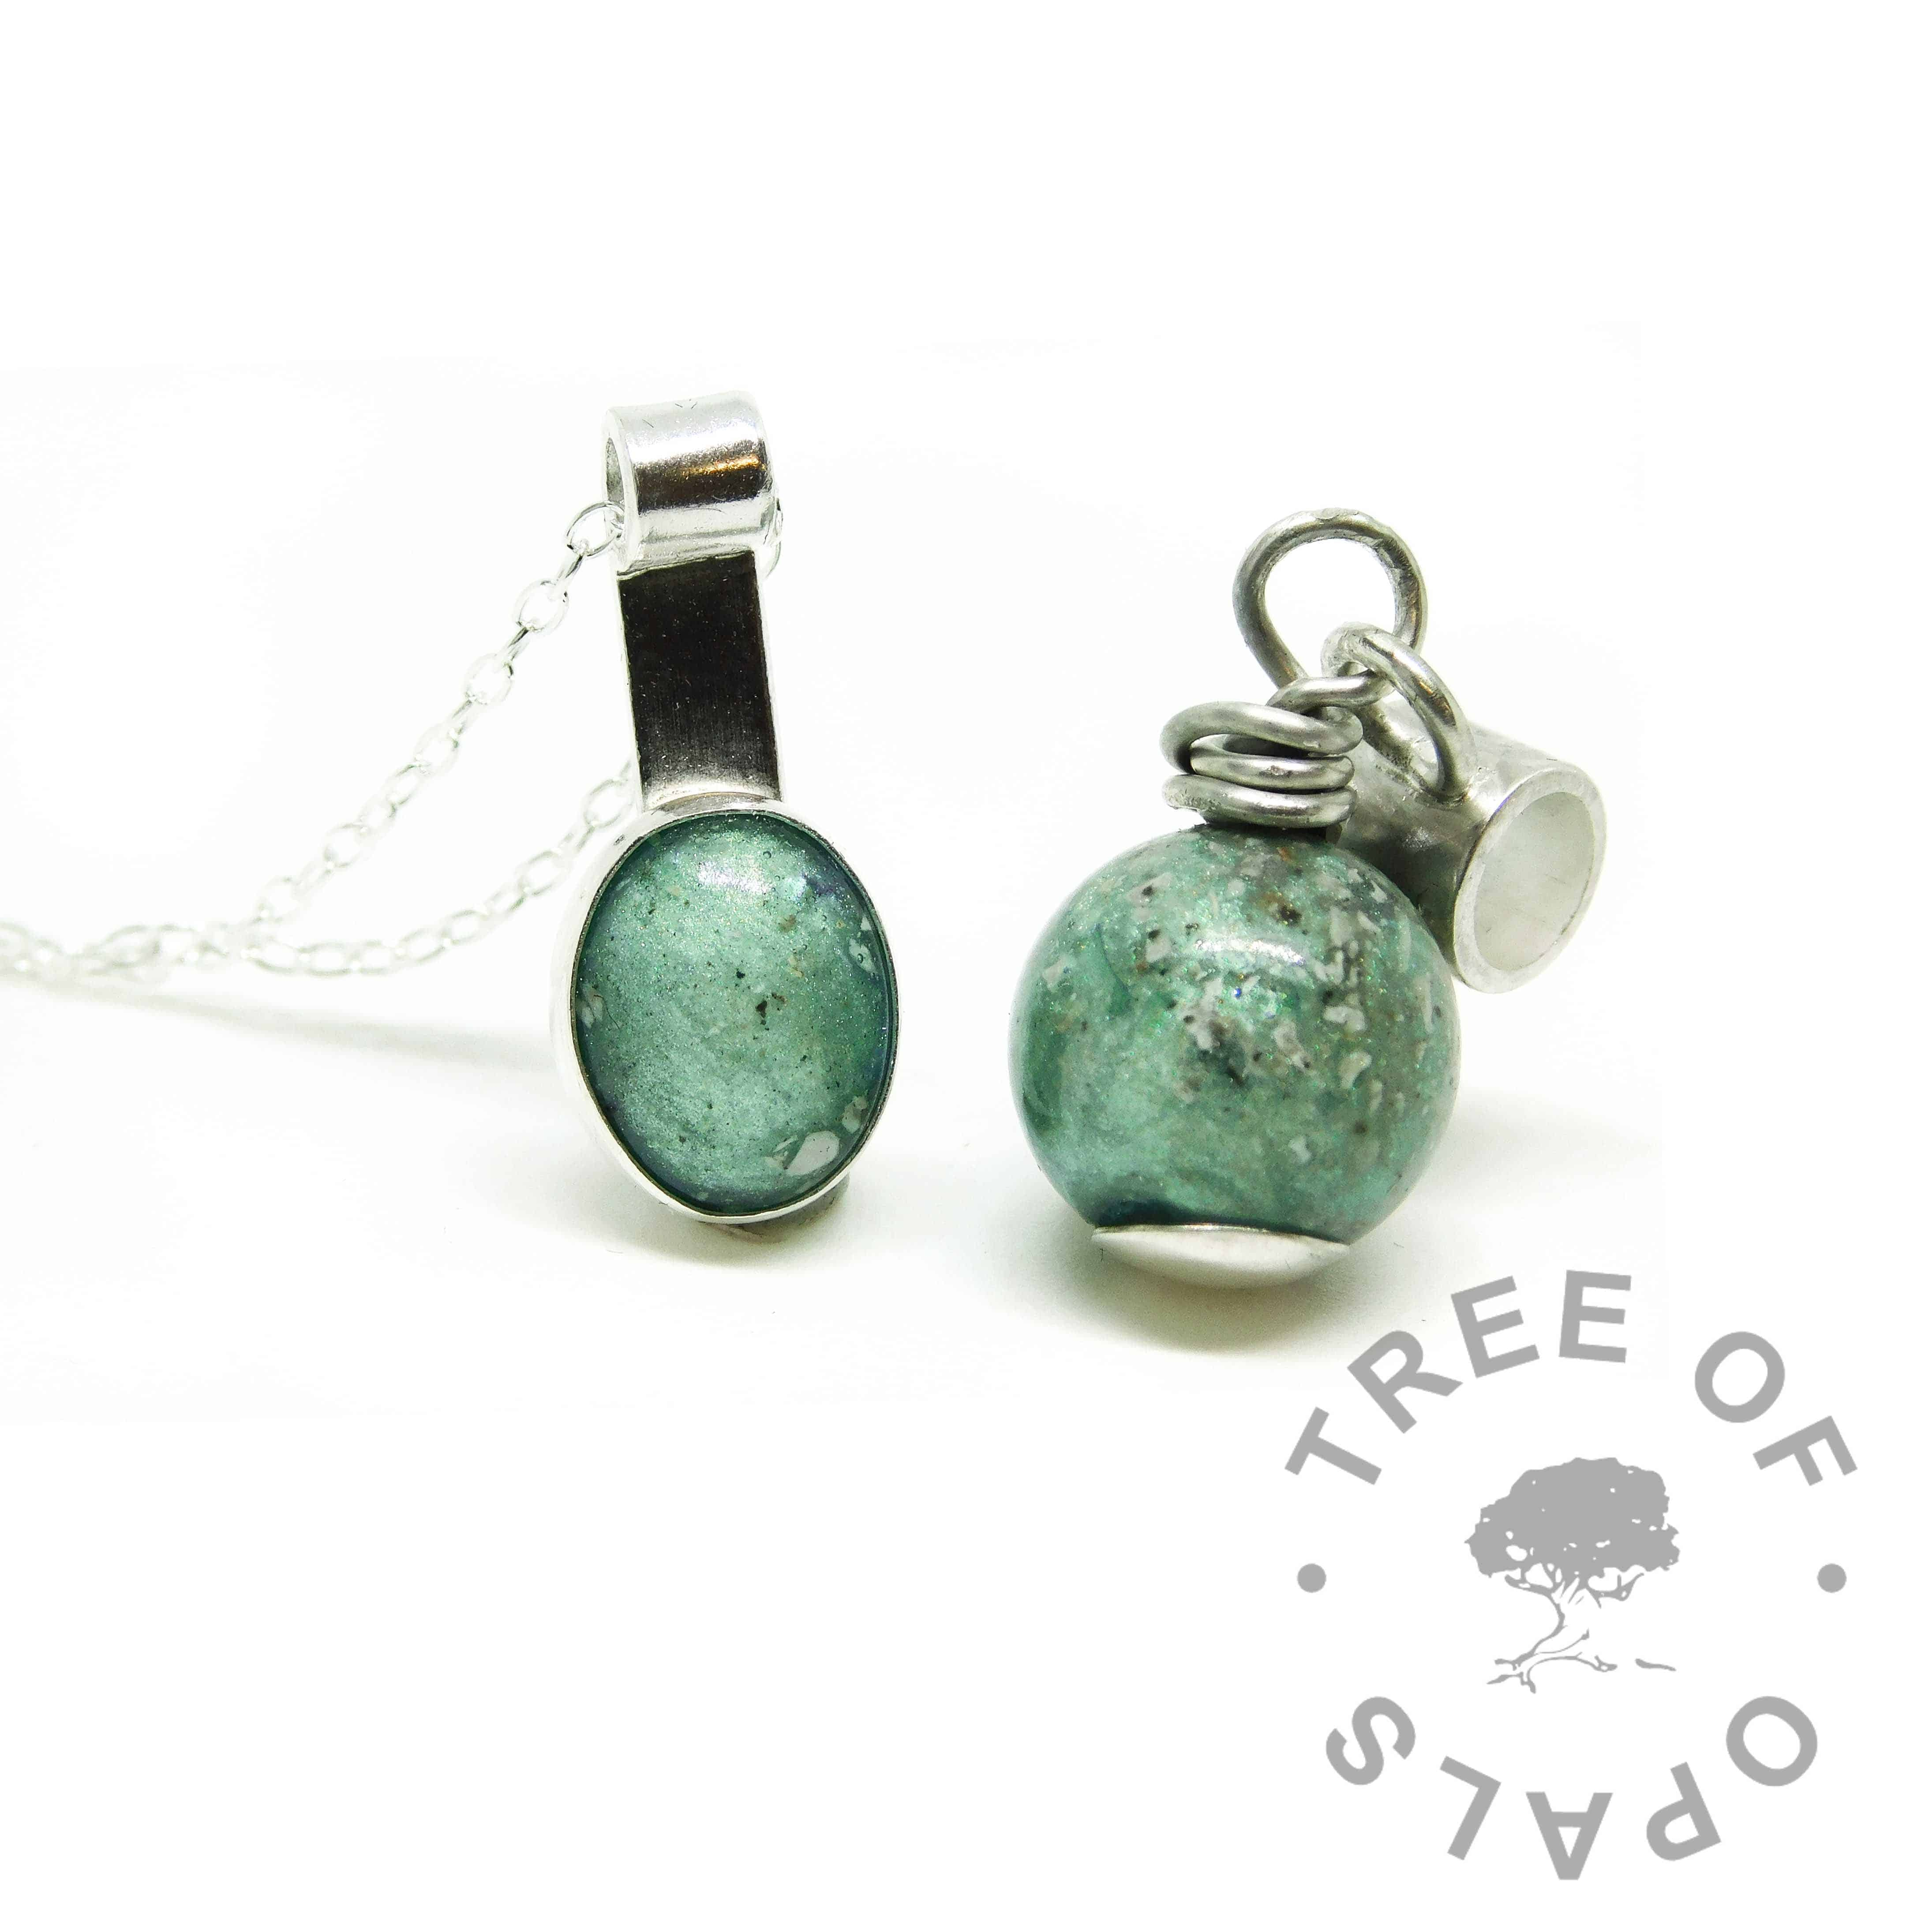 European setting charm tube dangle charm and mystery piece. Cremation ashes pearl with Angelic Aqua Resin Sparkle Mix